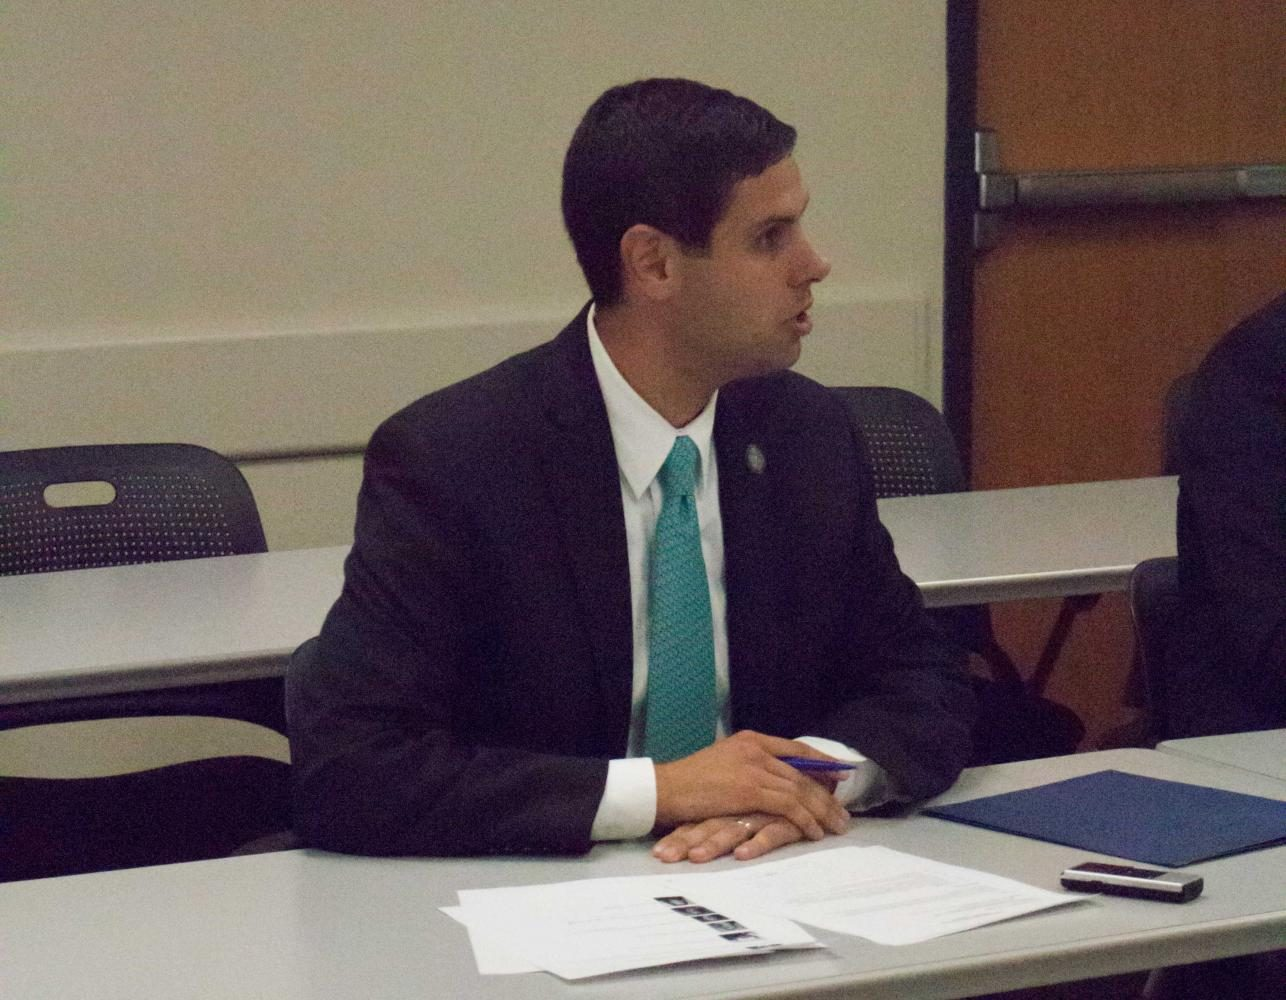 Democratic gubernatorial candidate Nate Boulton discussed education at UNI on Monday.